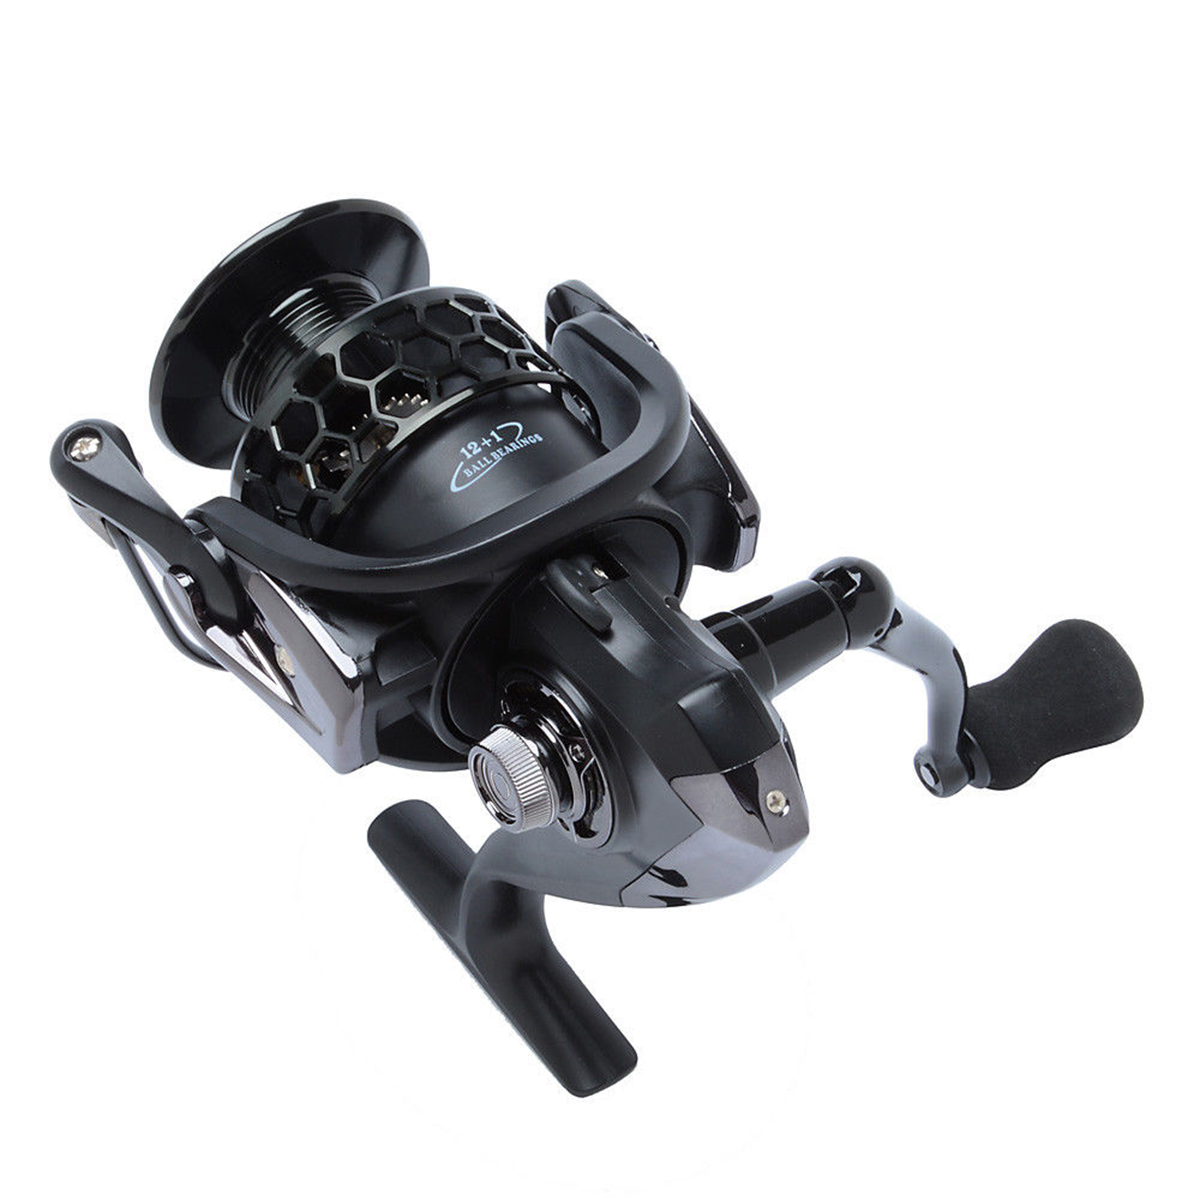 ZANLURE BE3000-4000 5.5:1 Metal Spinning Fishing Reel Saltwater/Freshwater Fishing Wheel